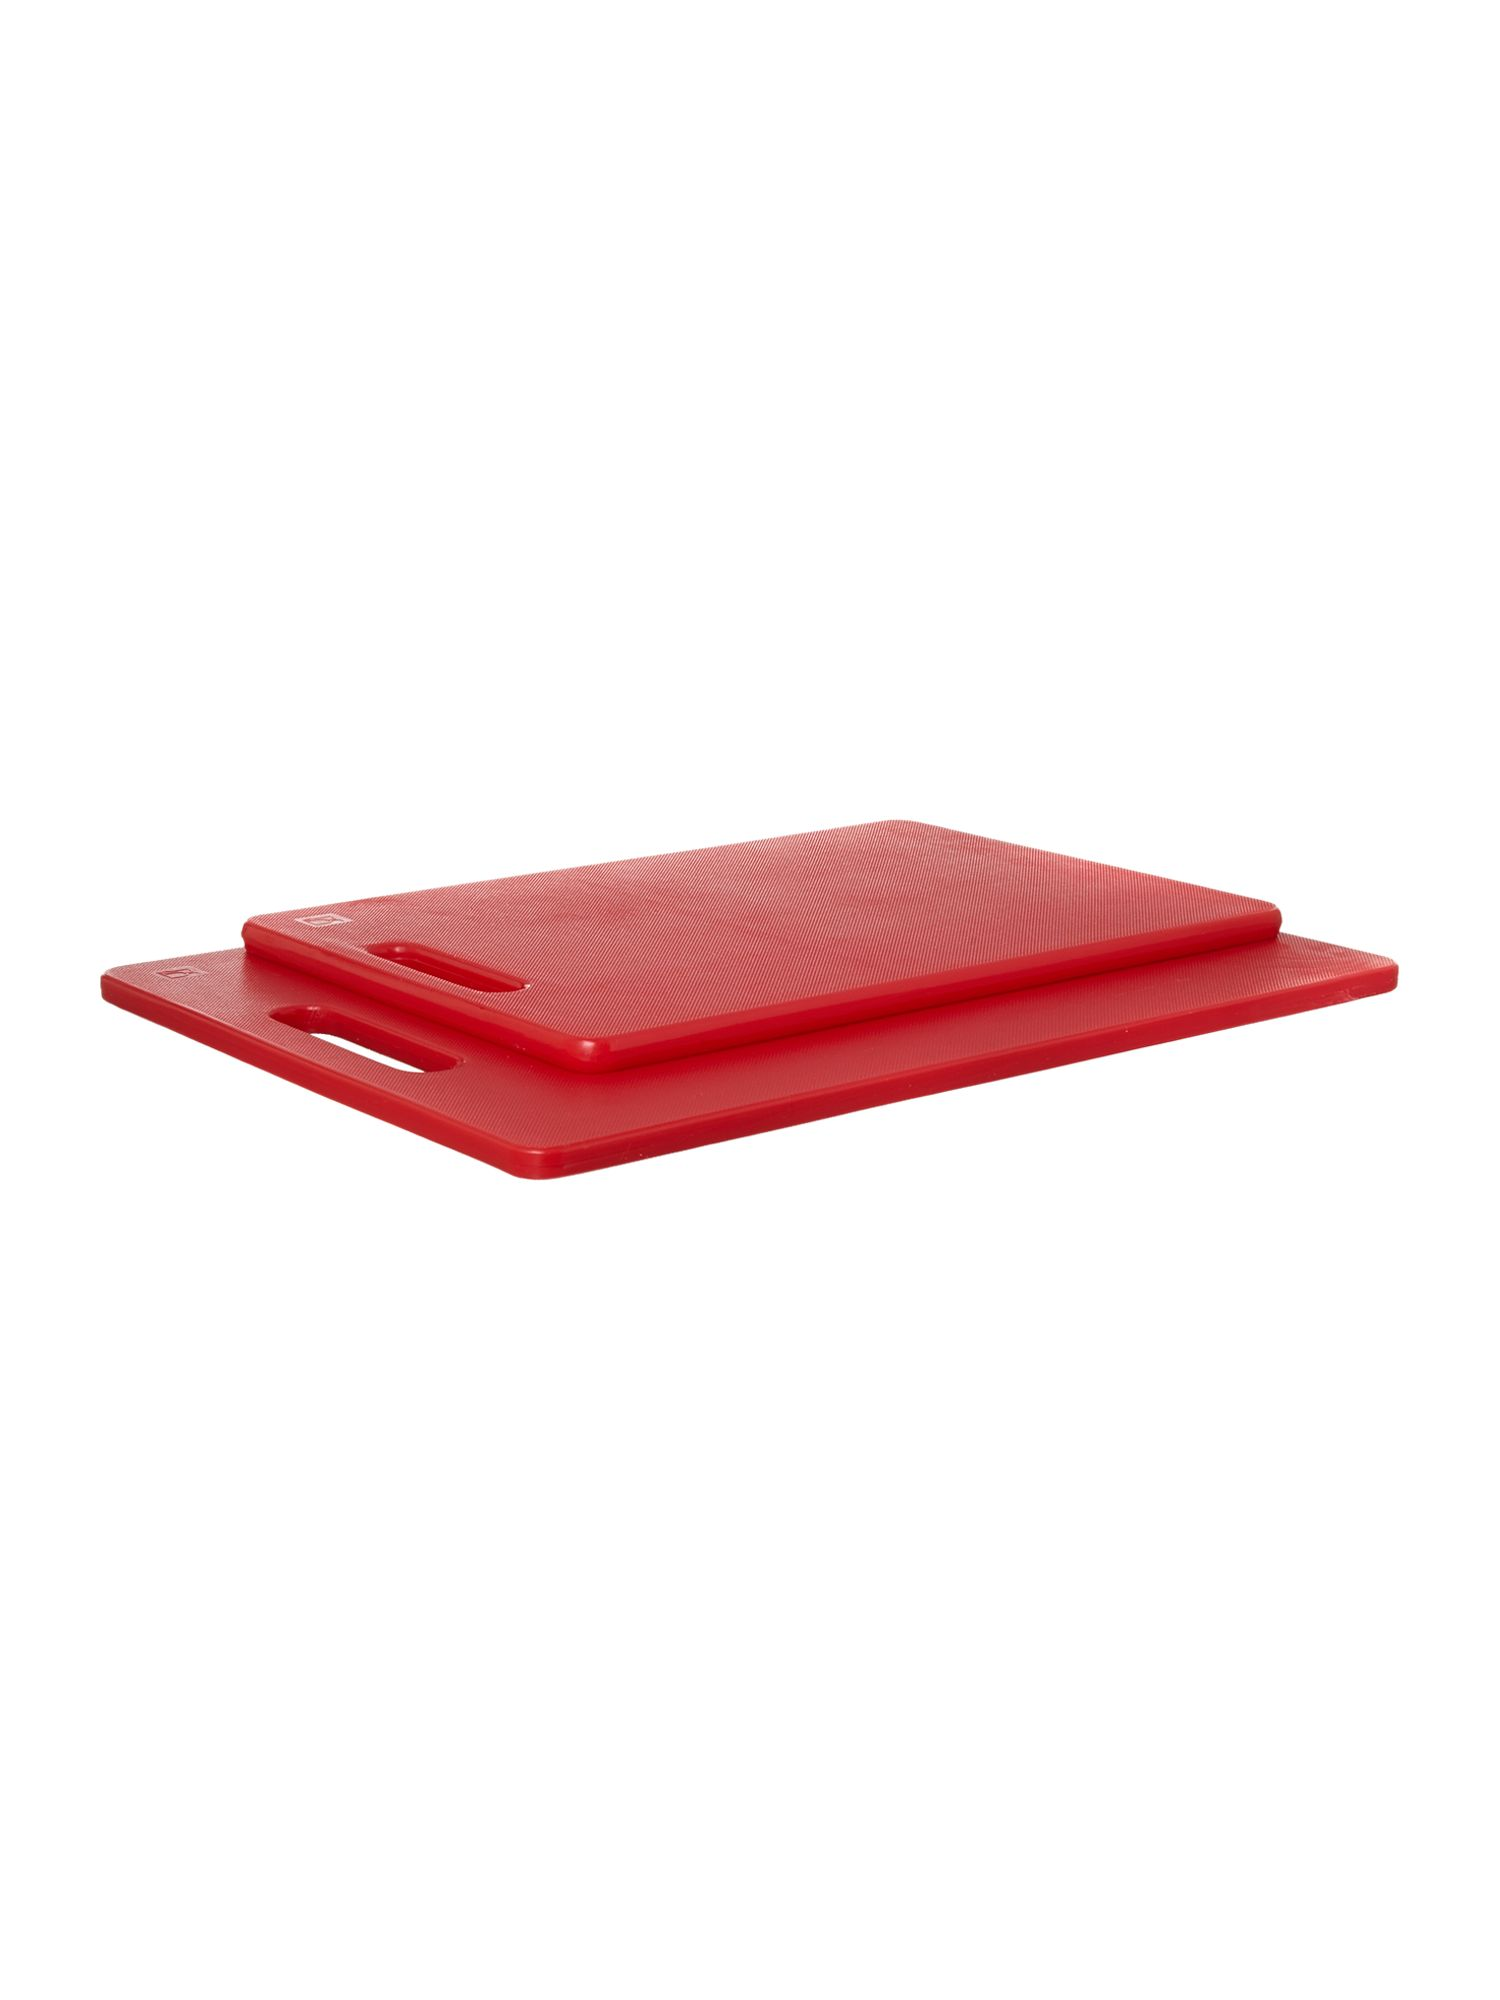 Chopping board set, red